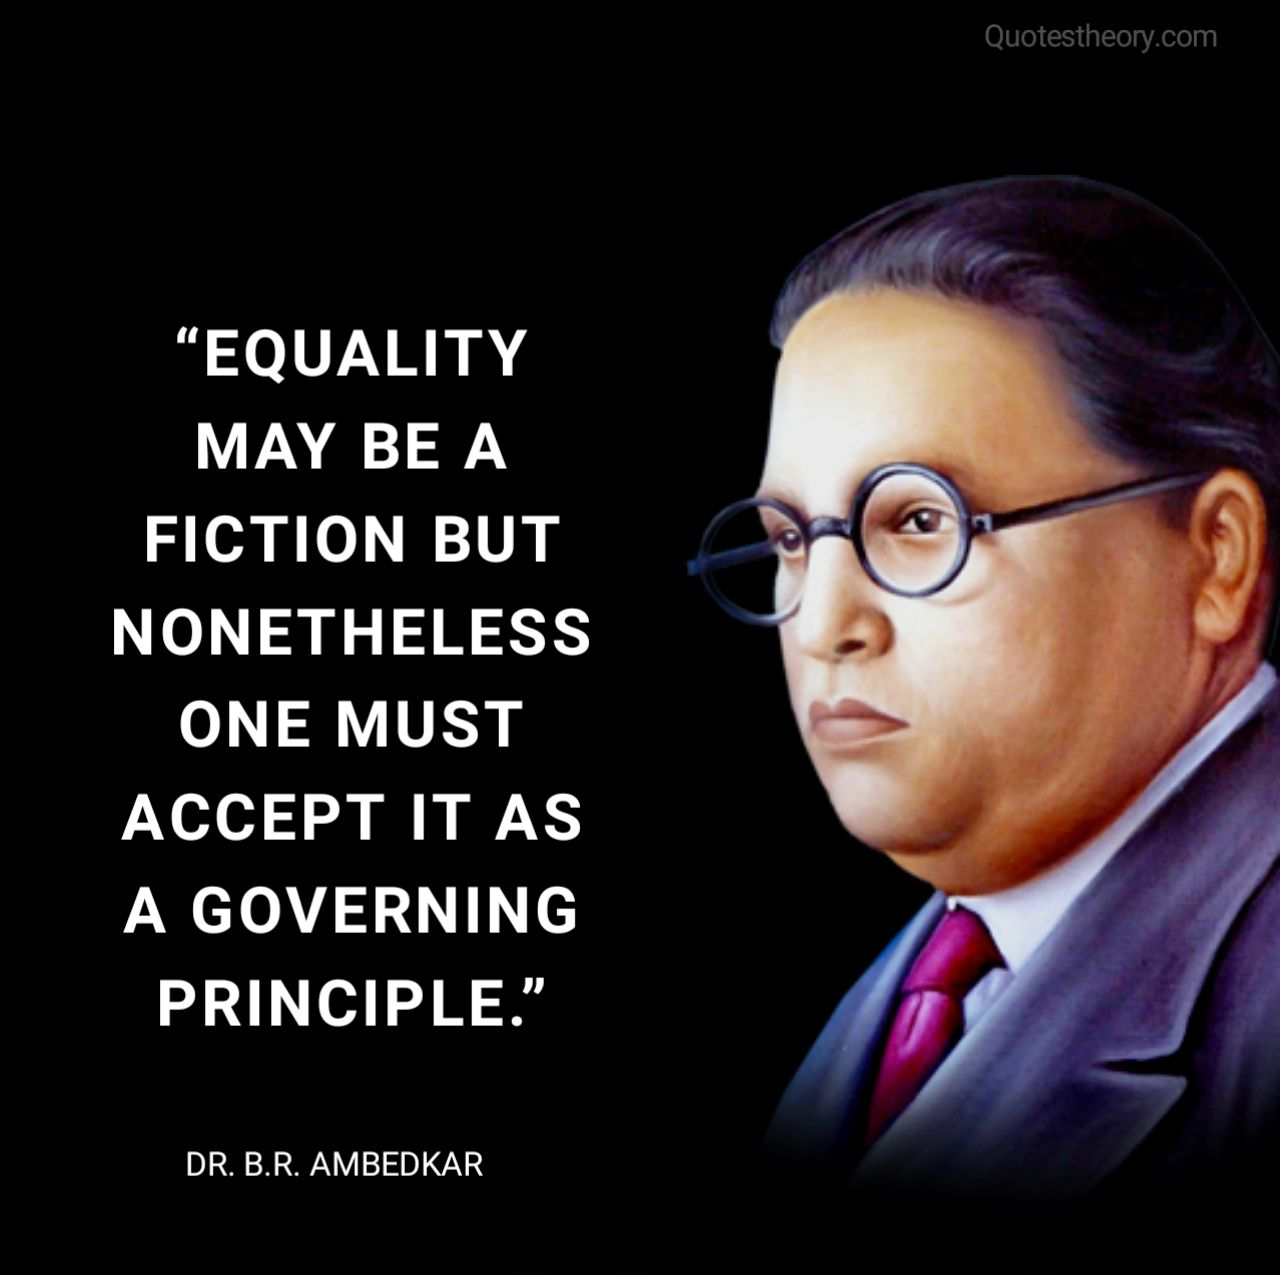 13 Famous Quotes By Dr B R Ambedkar Famous Quotes Quotes Famous